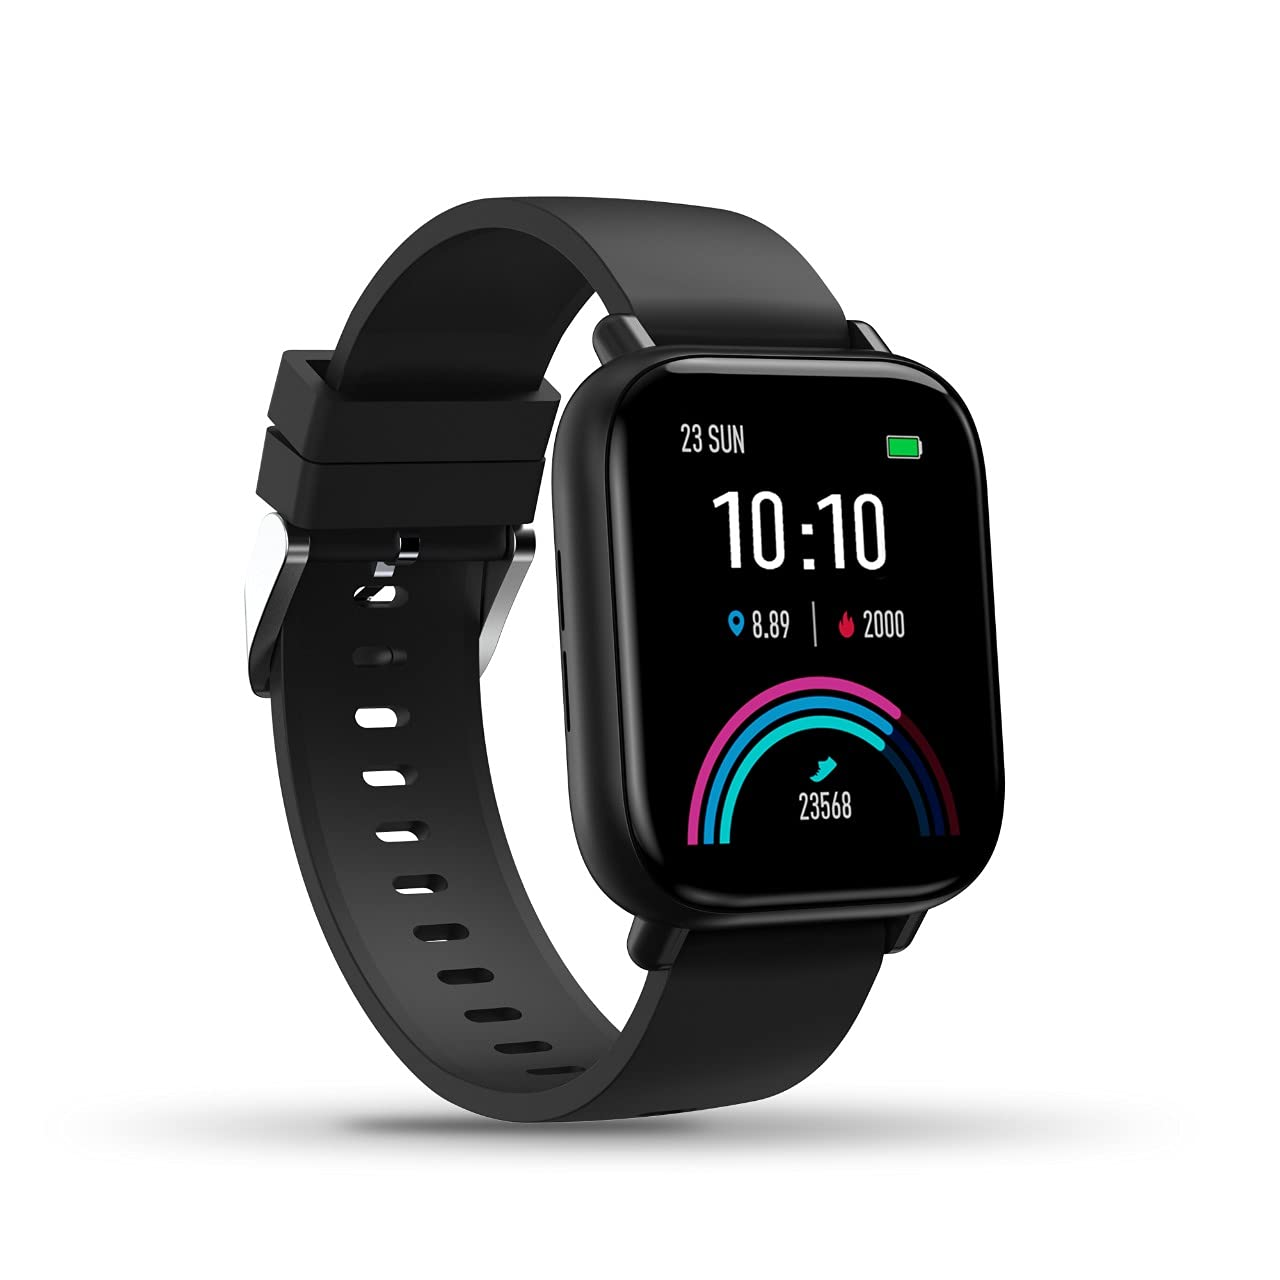 Gionee Stylfit GSW6 Smartwatch Launched: Price, Specs, Features